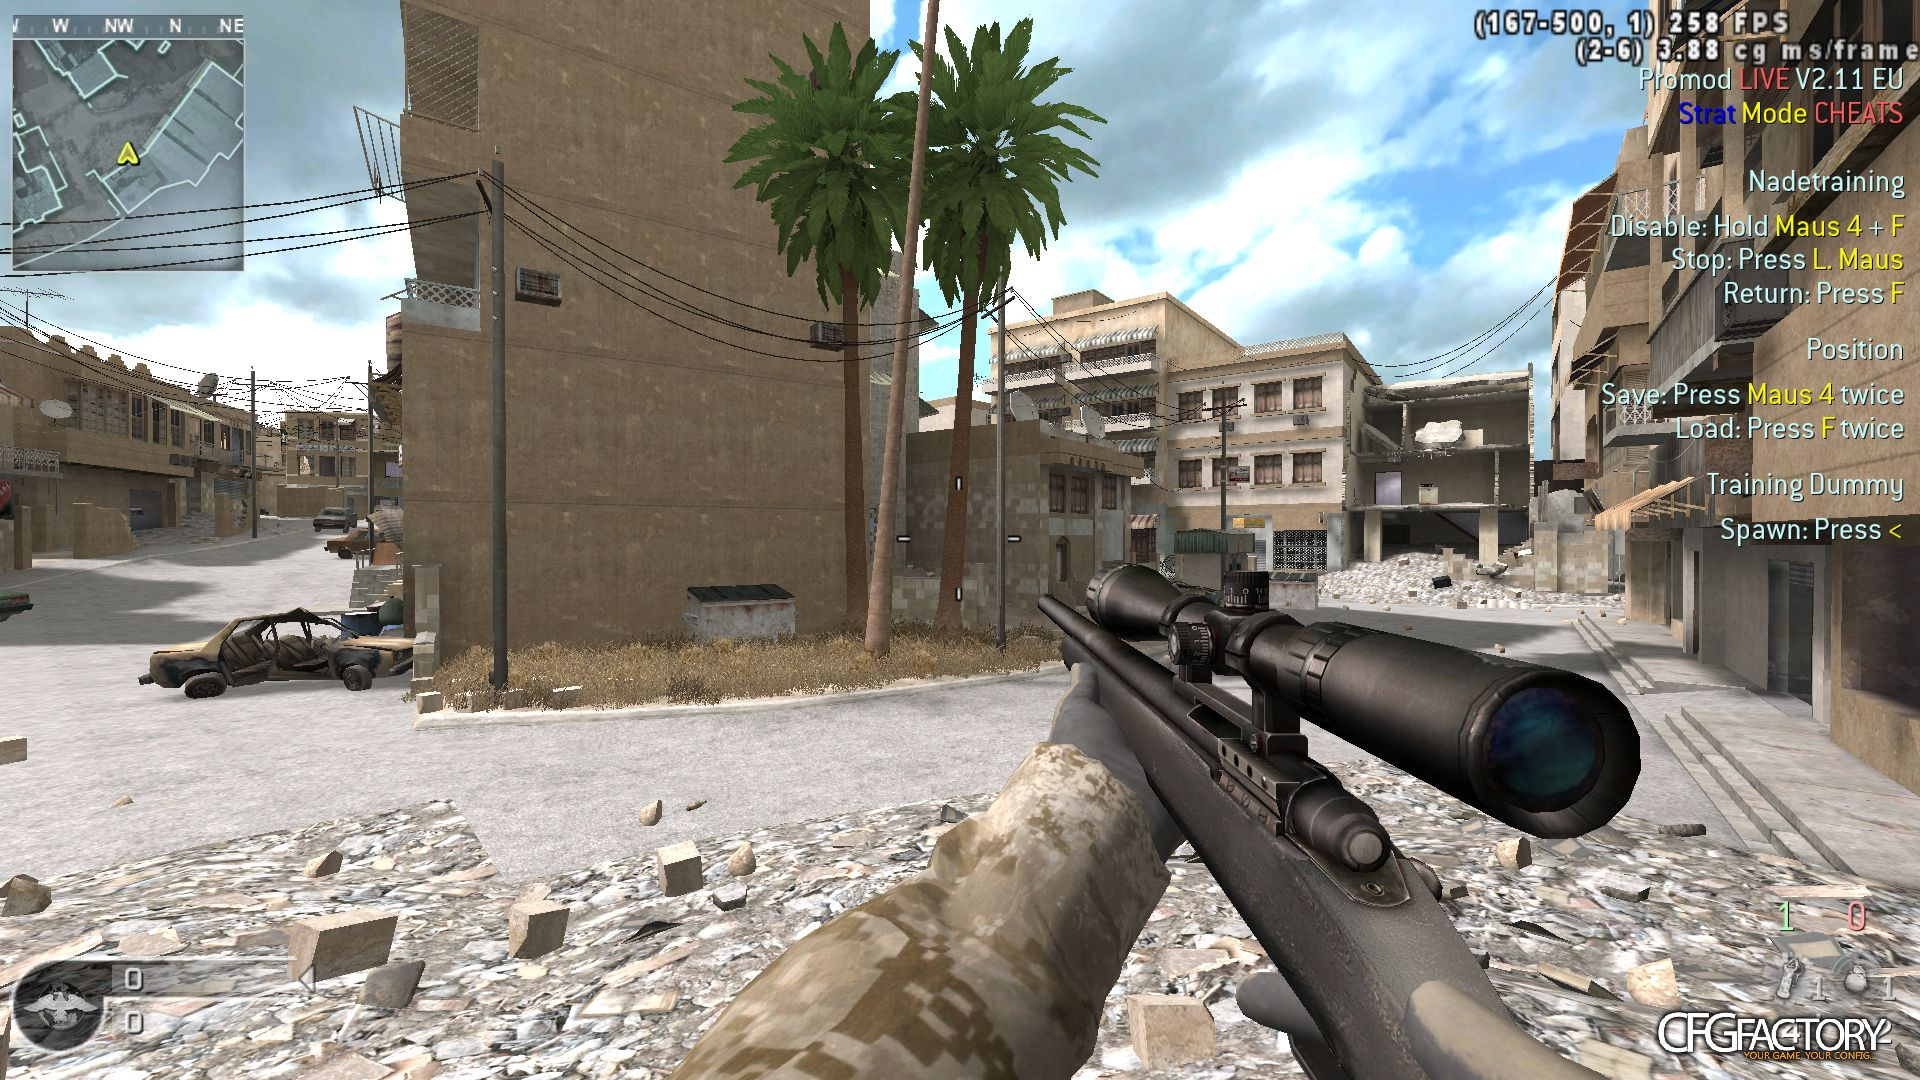 Cod4 configs boost your fps